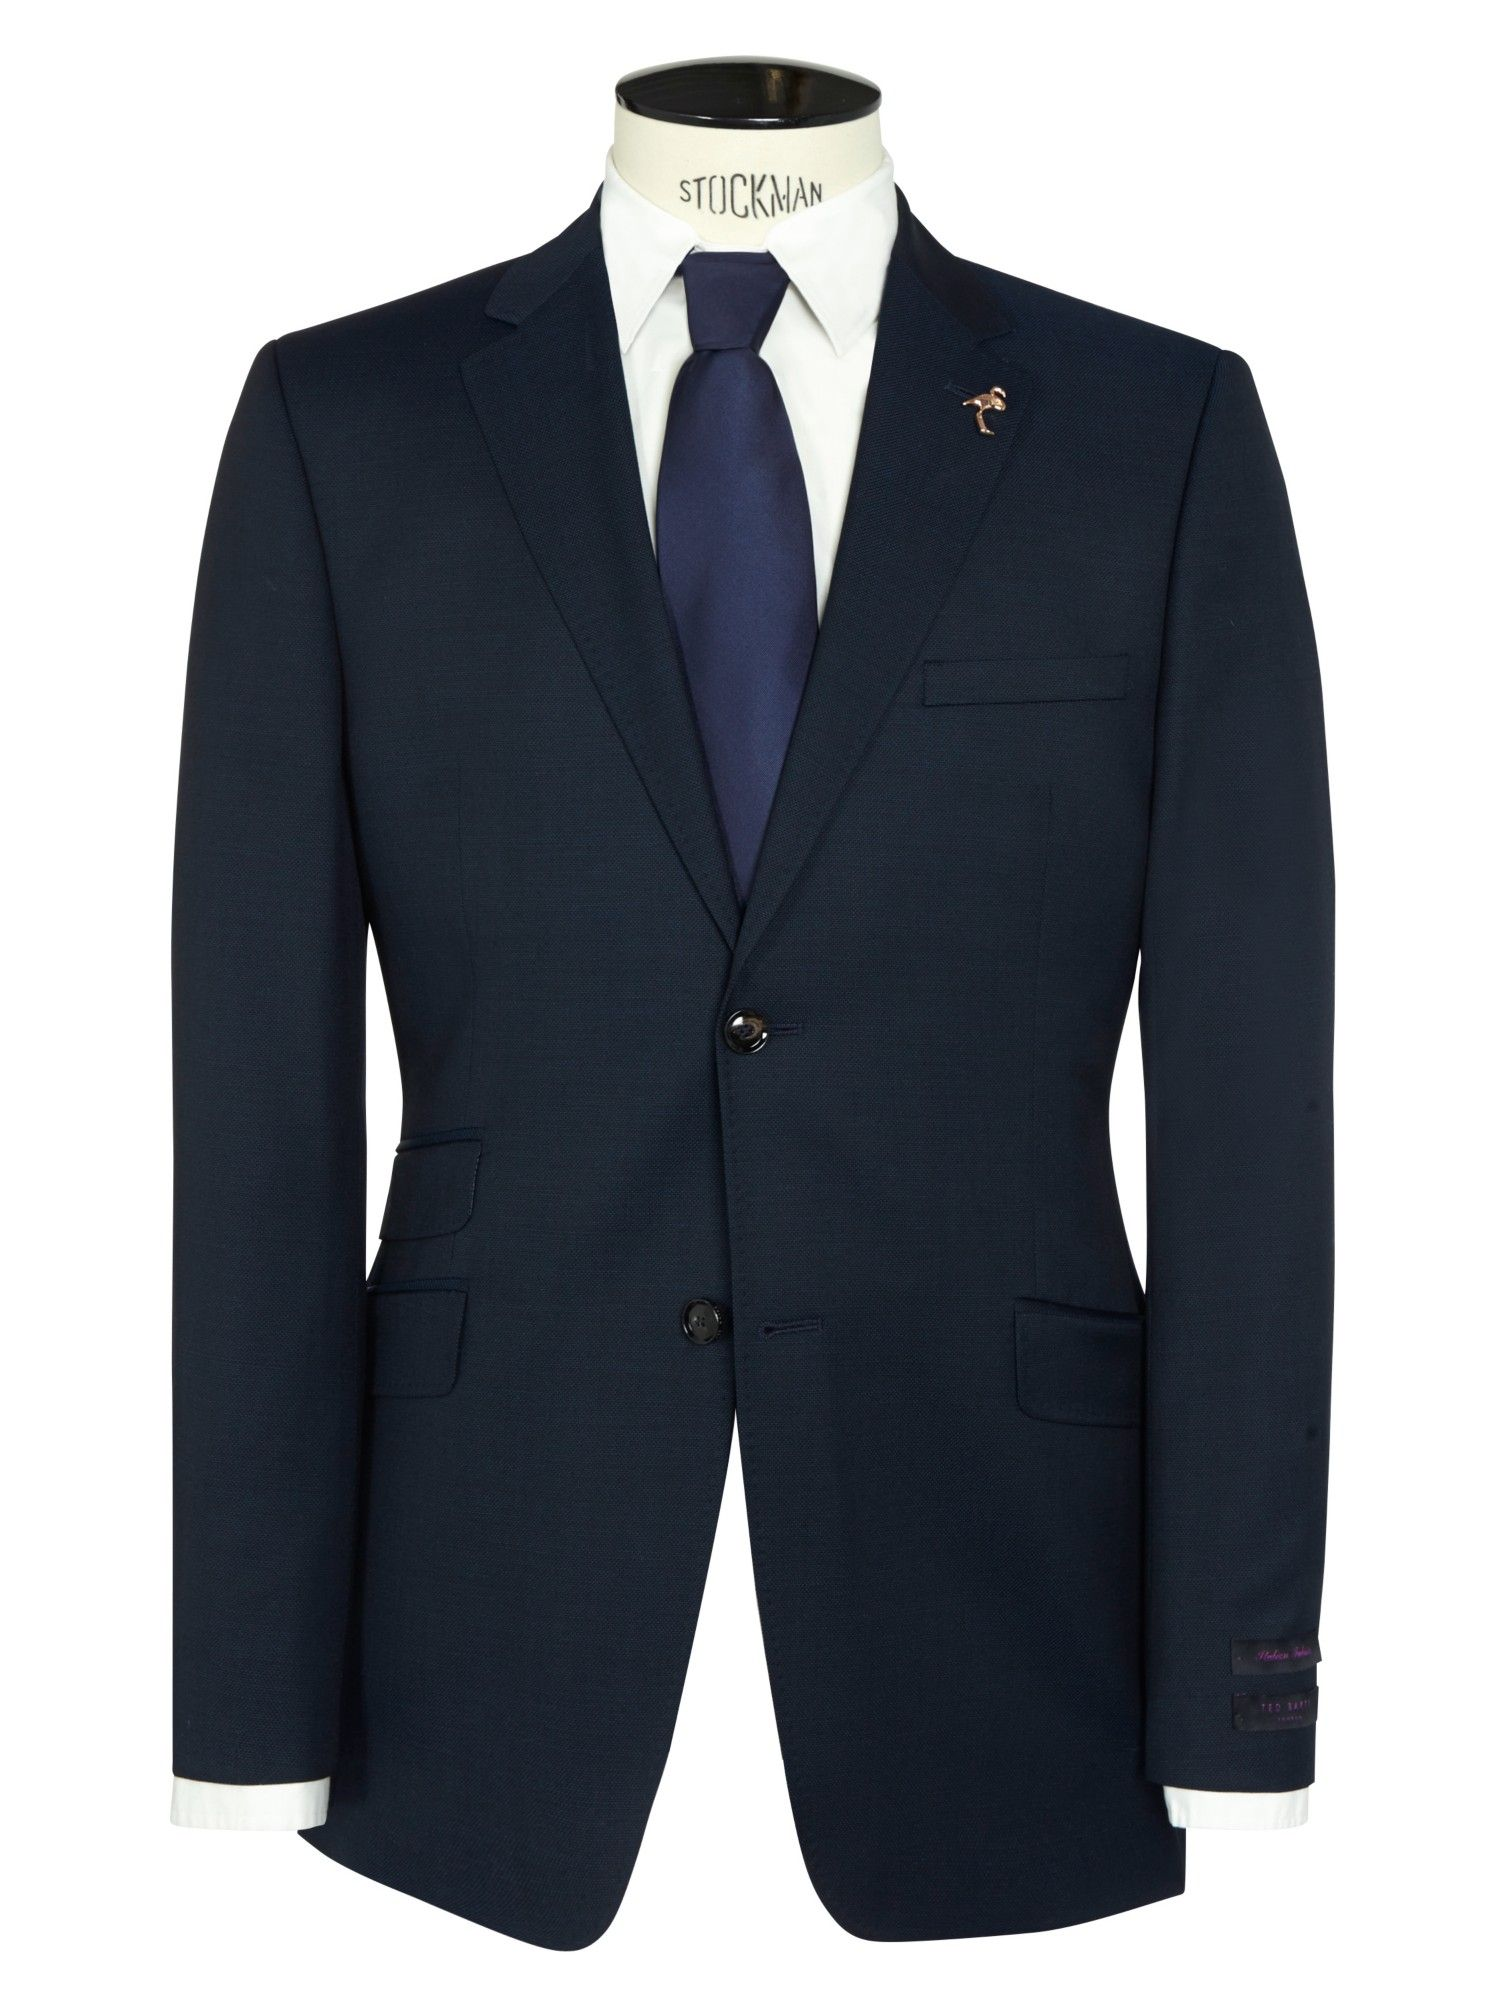 917ae4d9a Ted Baker Endurance Sterling Semi Plain Wool Suit Jacket